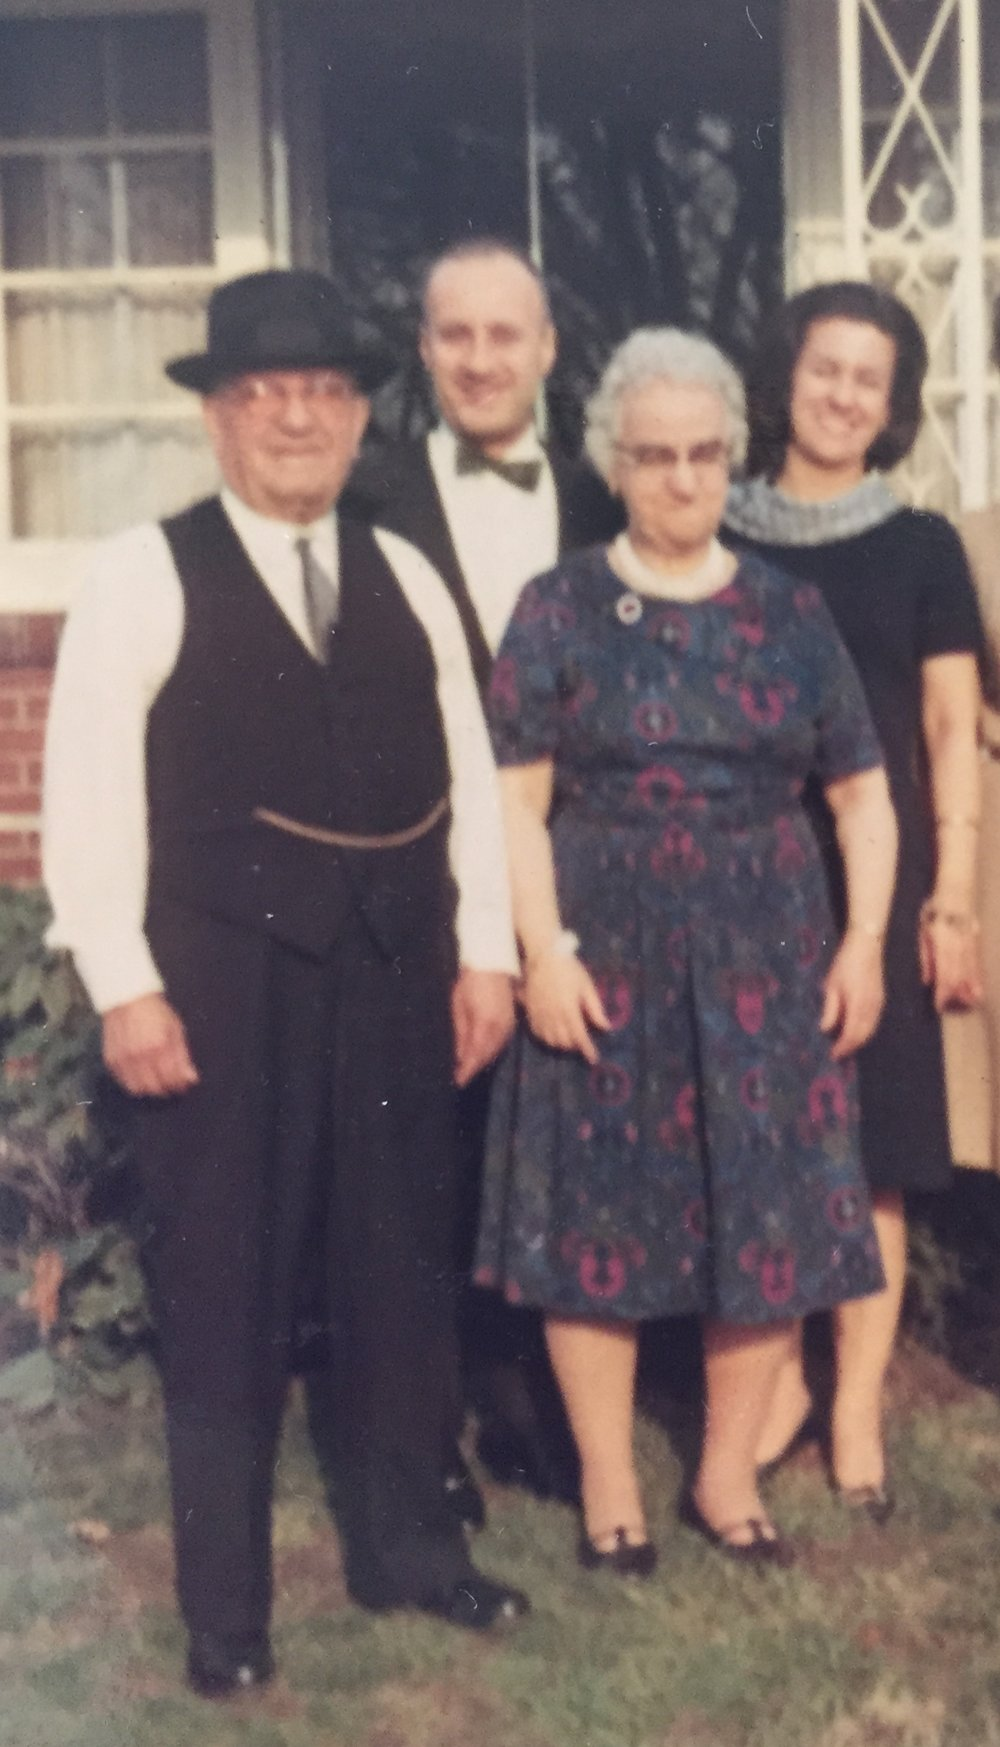 "From left to right: - Nicola Romito - Samuel Lioon (my grandfather, ""Pap Pap"" who was born in Lebanon)  - Jennie Romito  - Jacqueline Romito Lioon (my grandmother, ""Nonna"")"